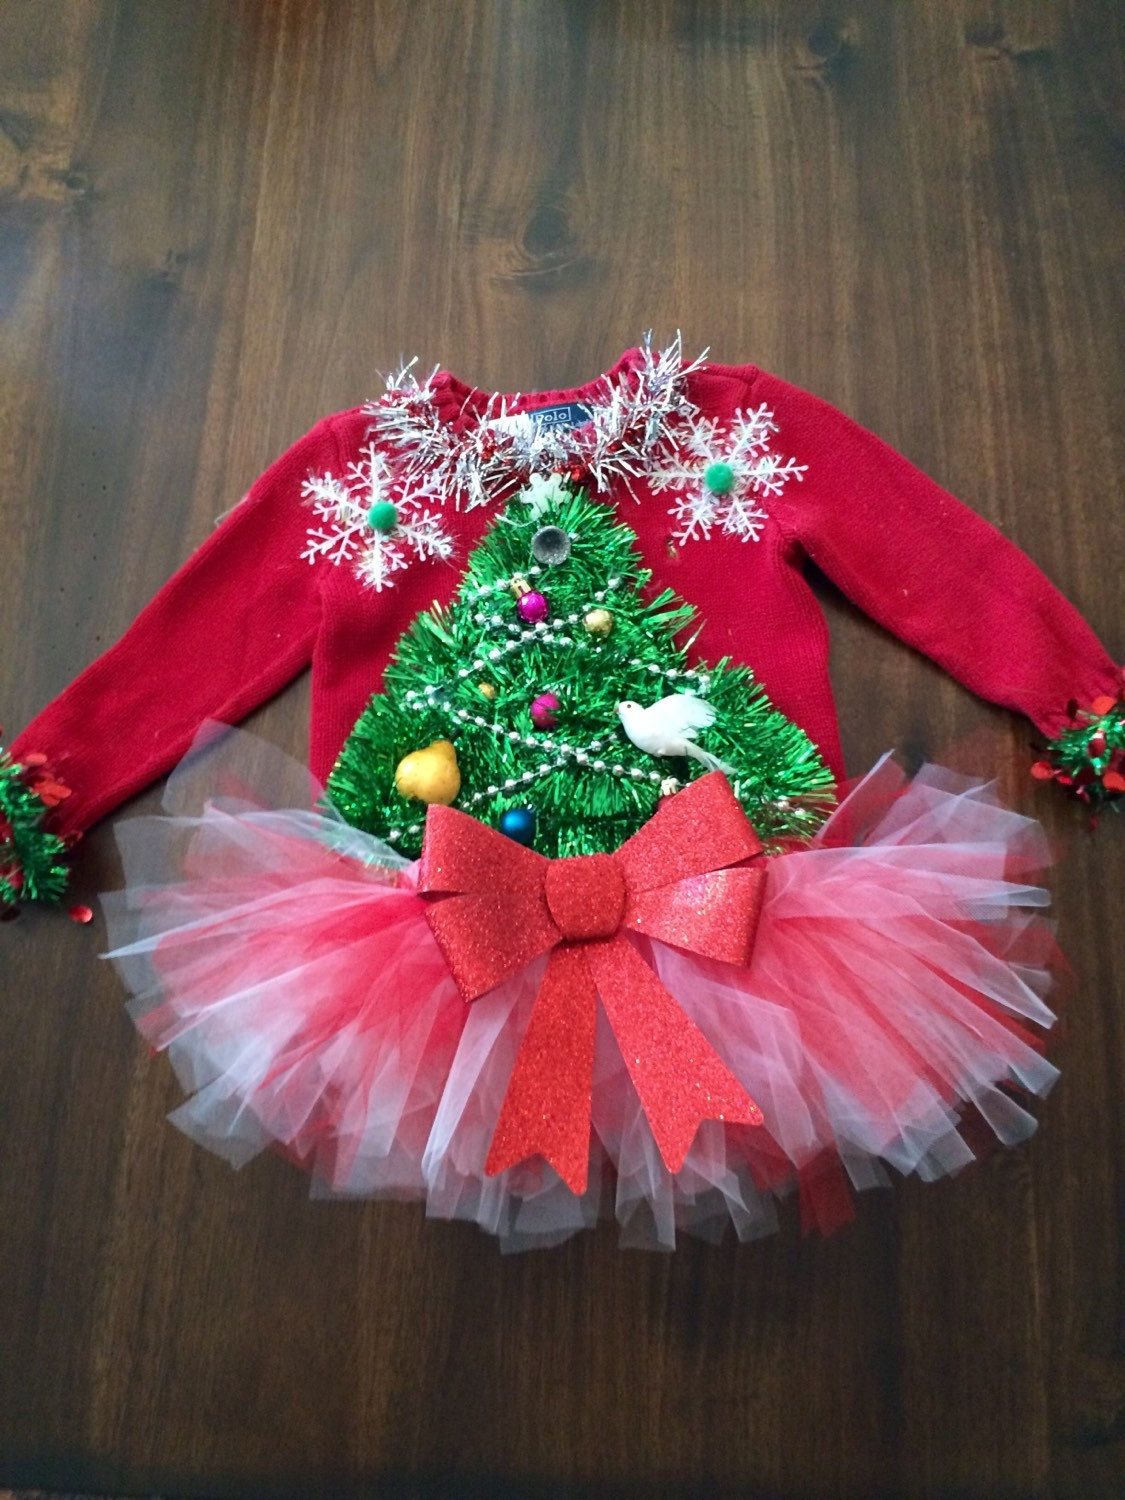 53a8ded9e Adorable toddler 3t Custom Ugly Christmas Sweater 2 turtle doves and pear  tree plus tutu!! by tackyuglychristmas on Etsy